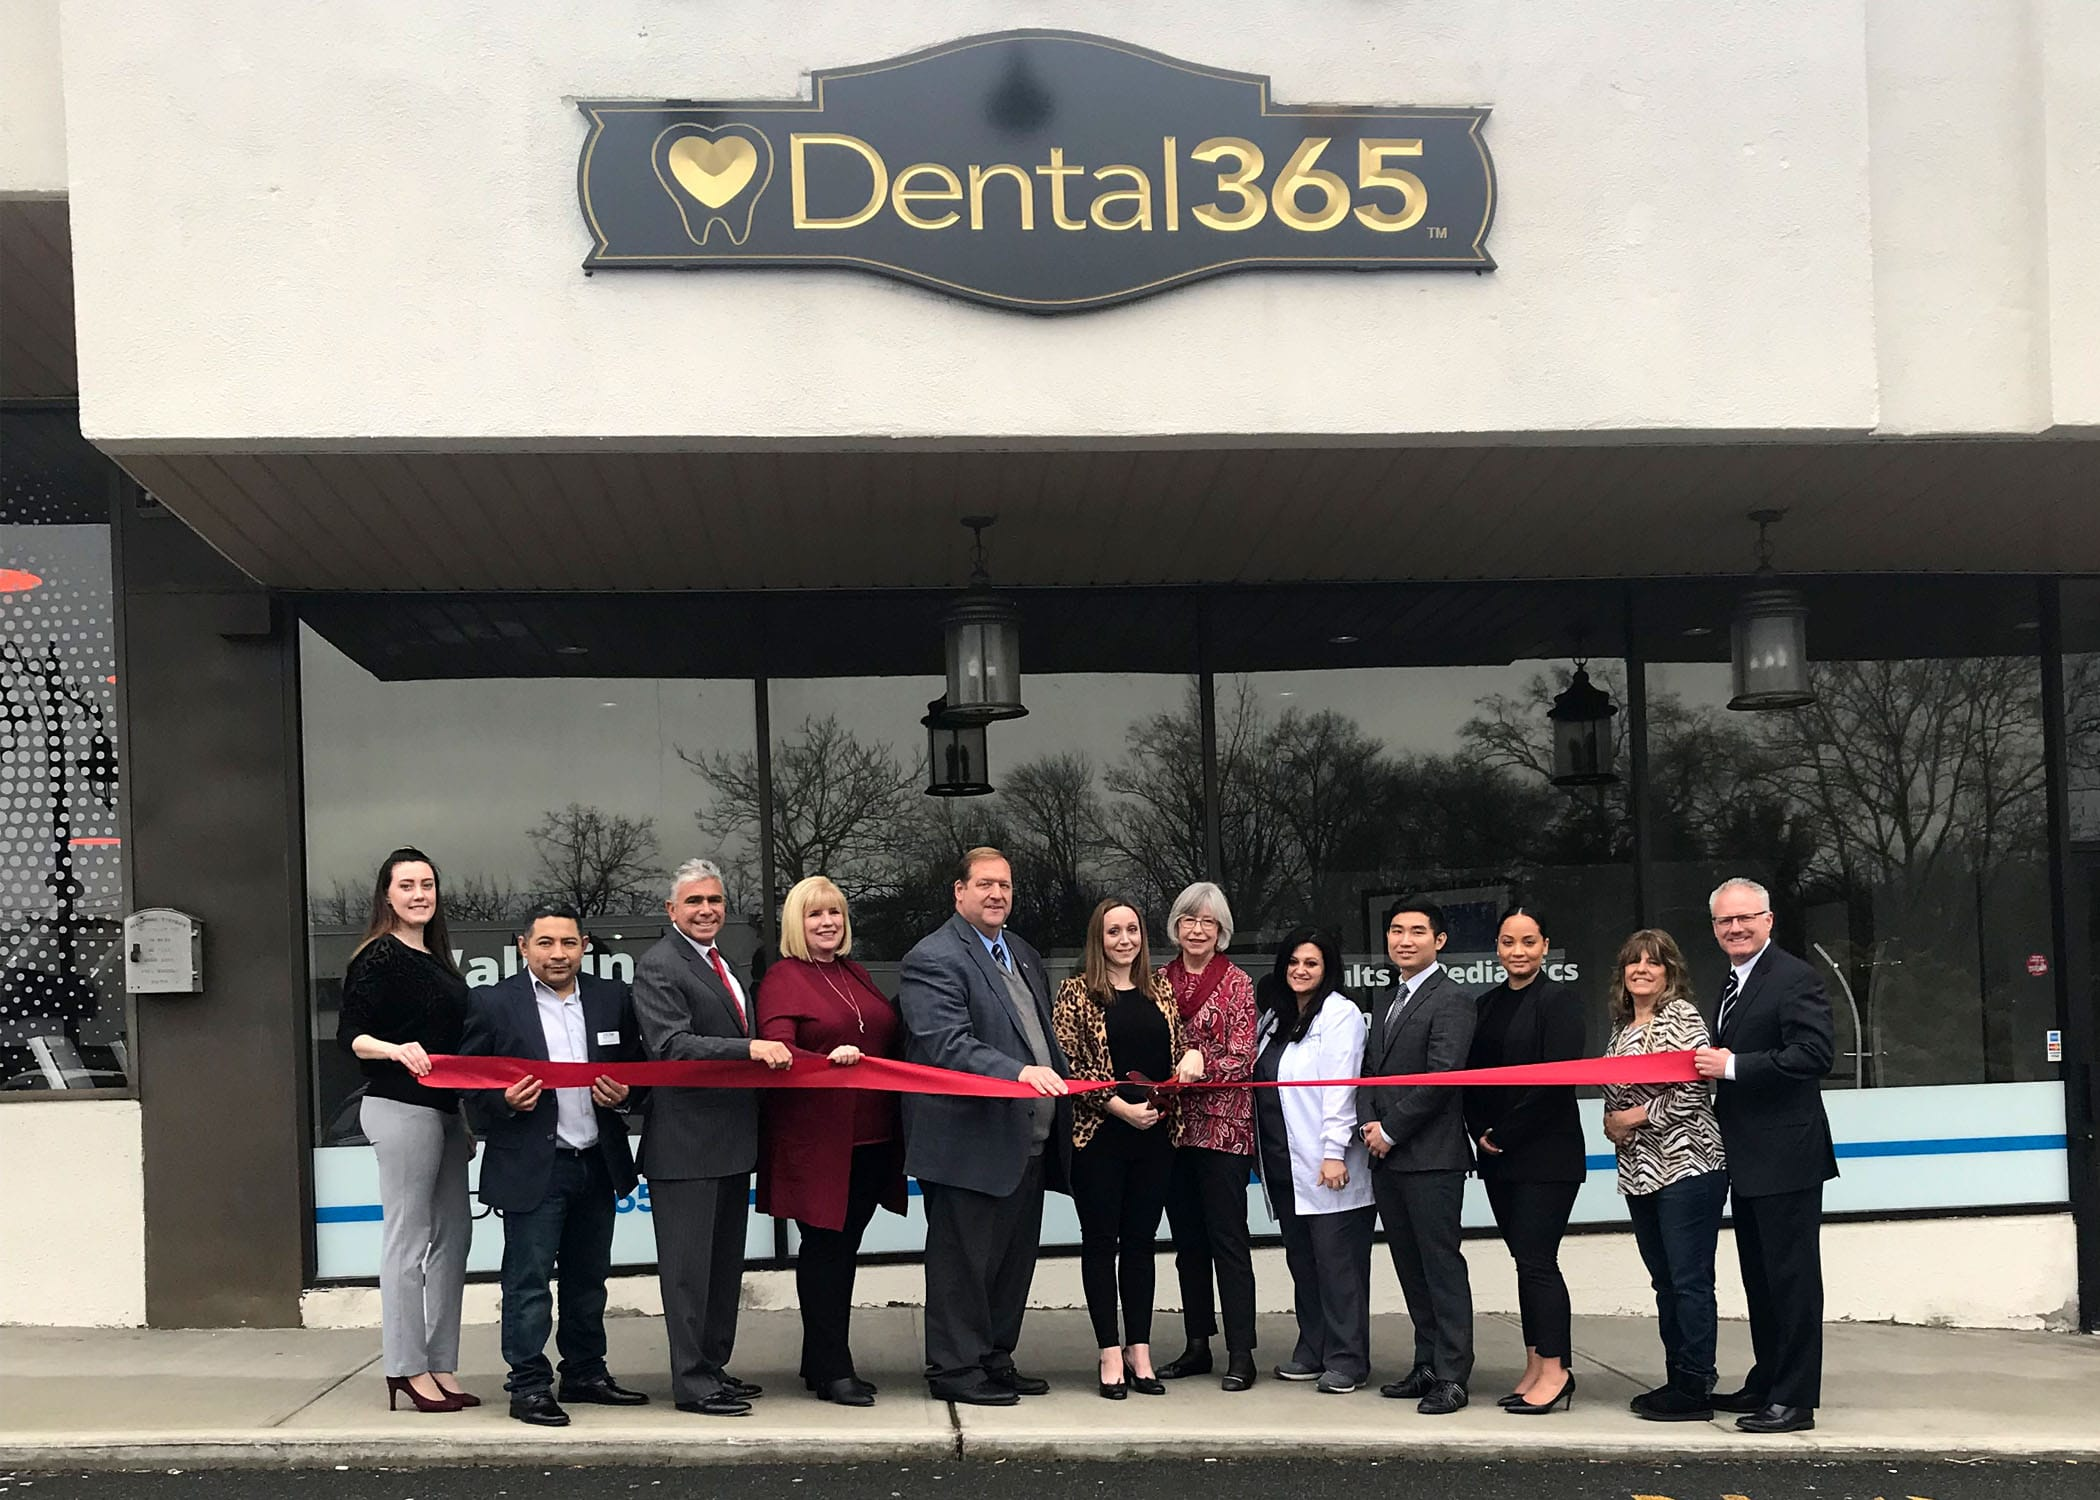 Ribbon Cutting ceremony at the New City Dental365 location